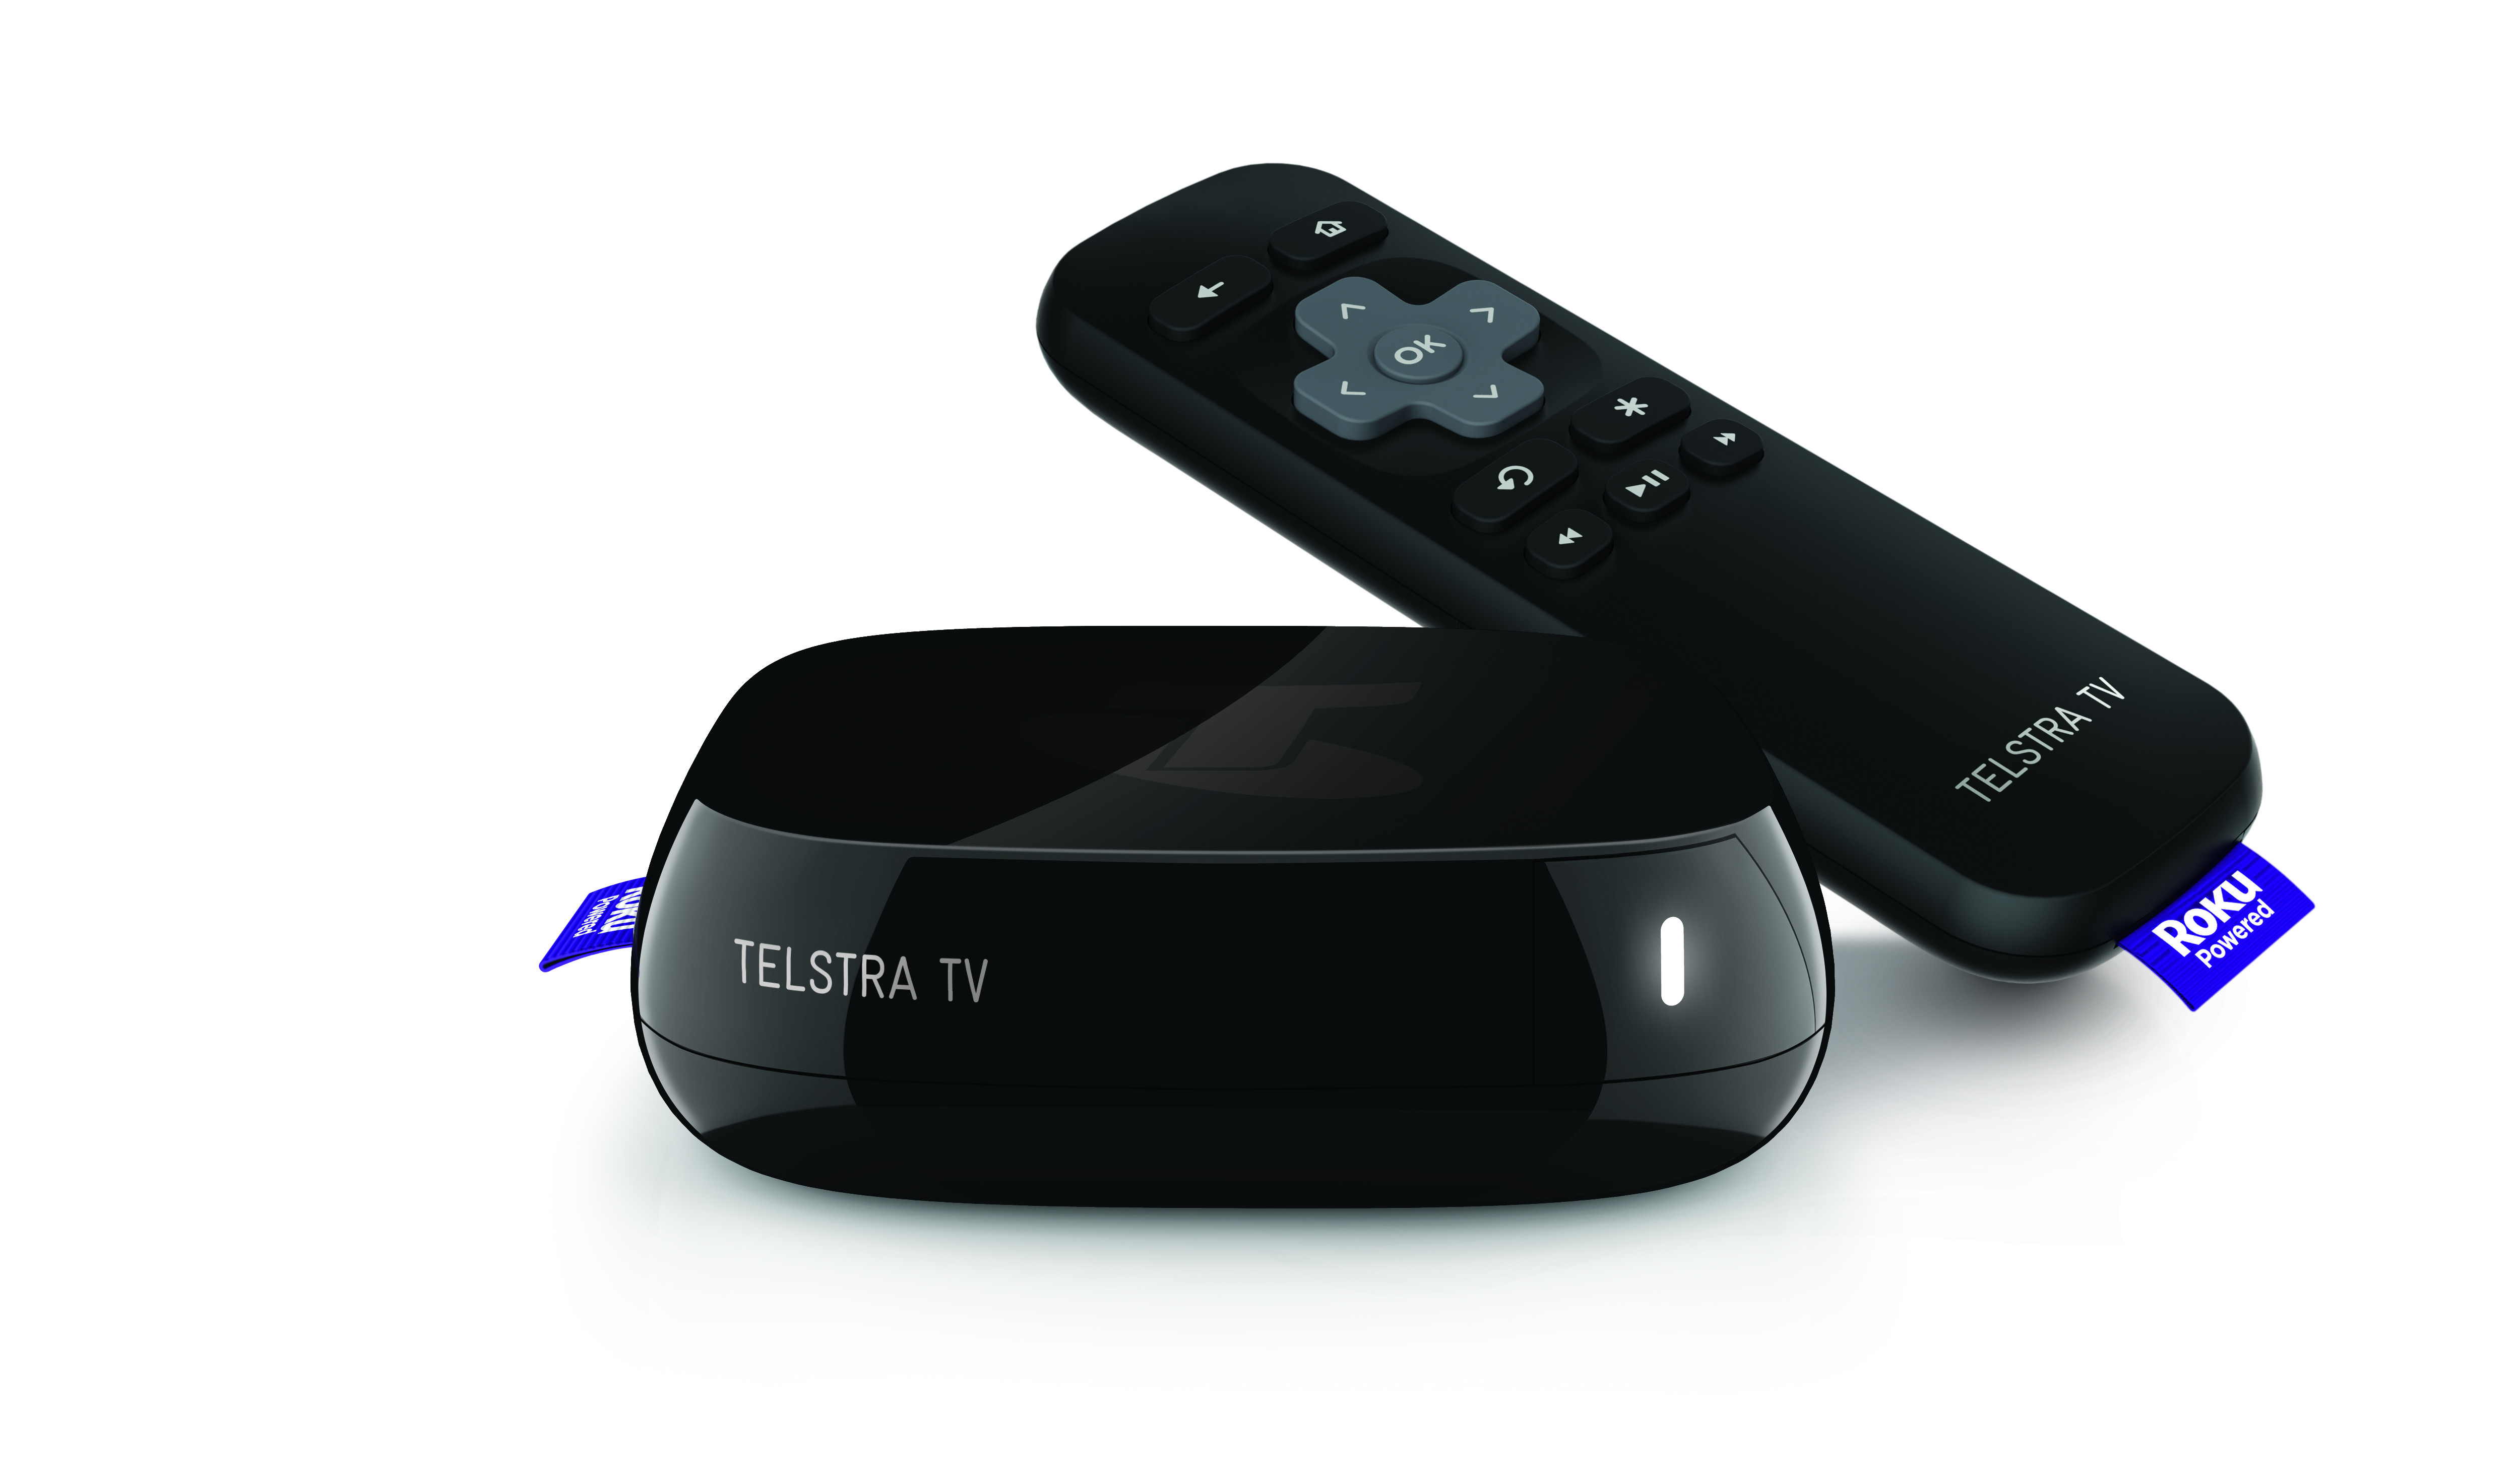 Telstra TV media player (provisional design) press picture courtesy of Telstra